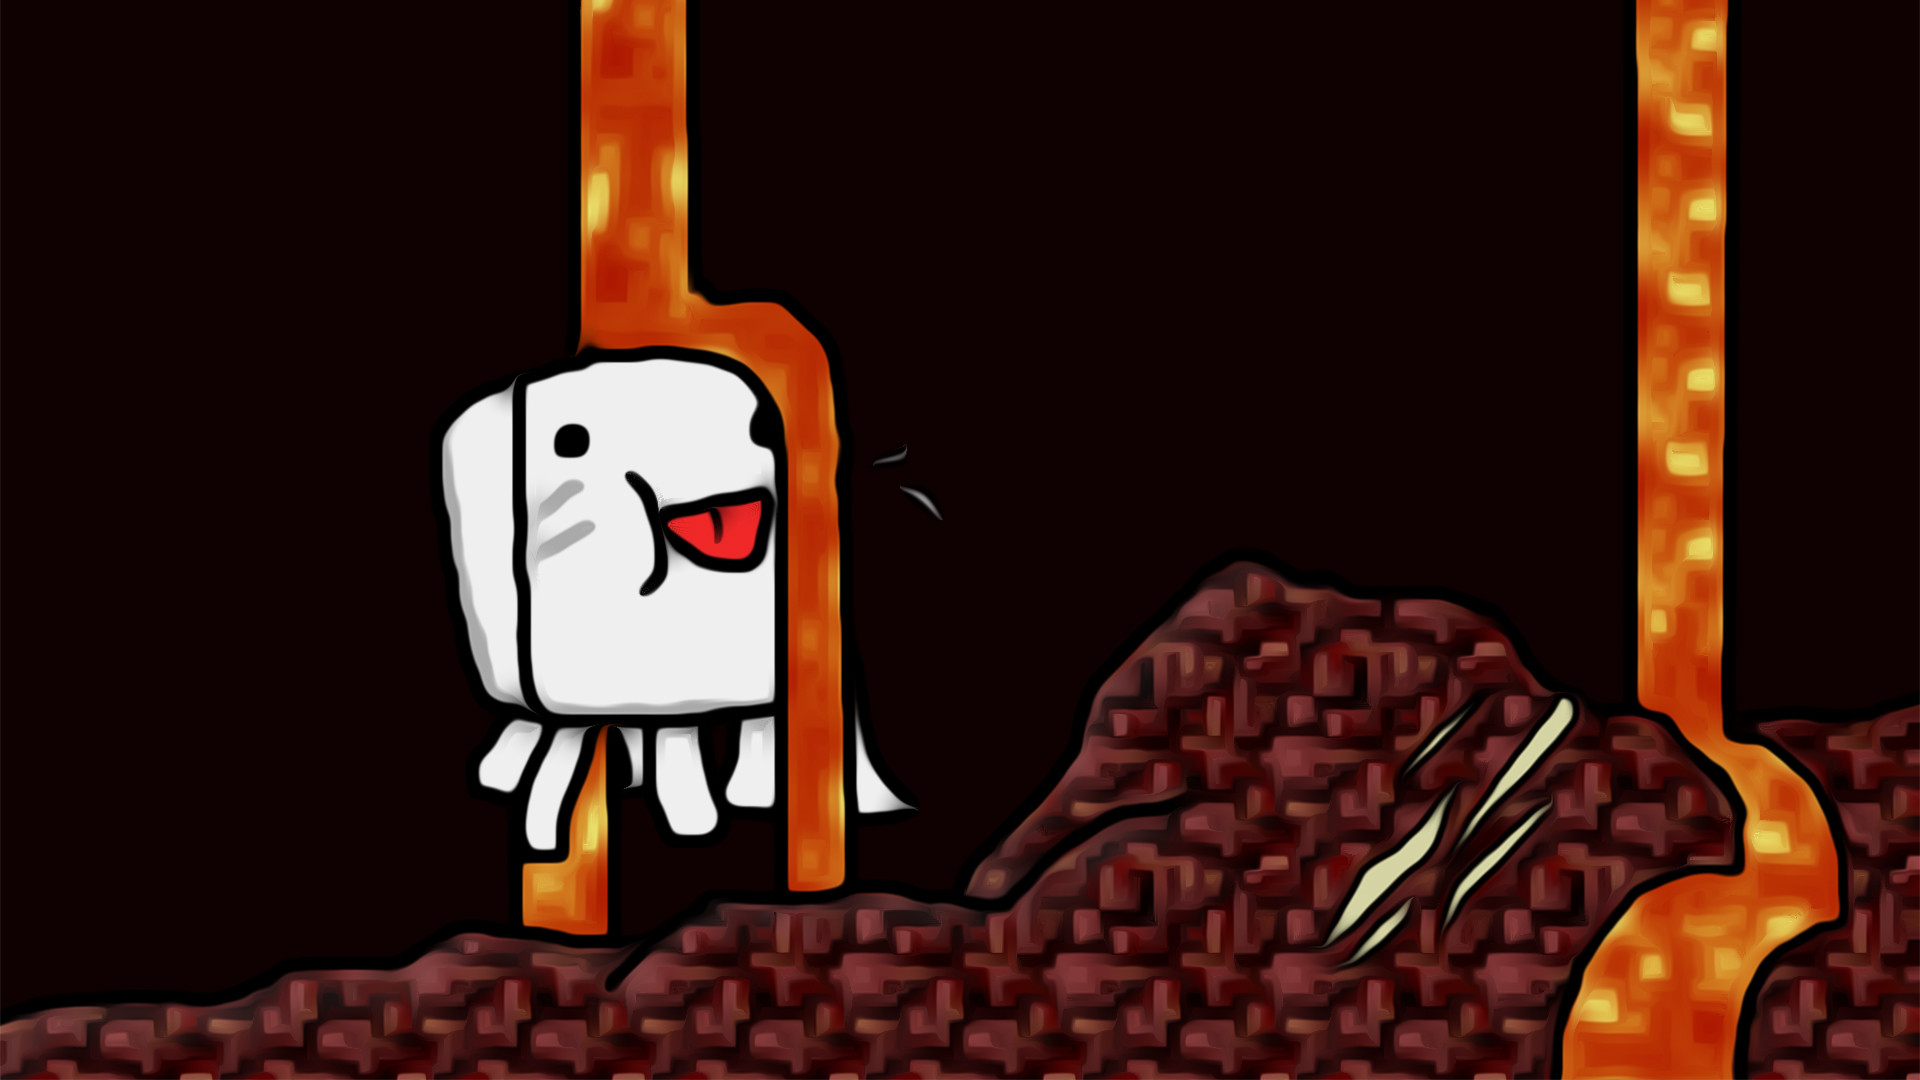 Somebody asked for a background with my Derpy Ghast Minecraft 1920x1080